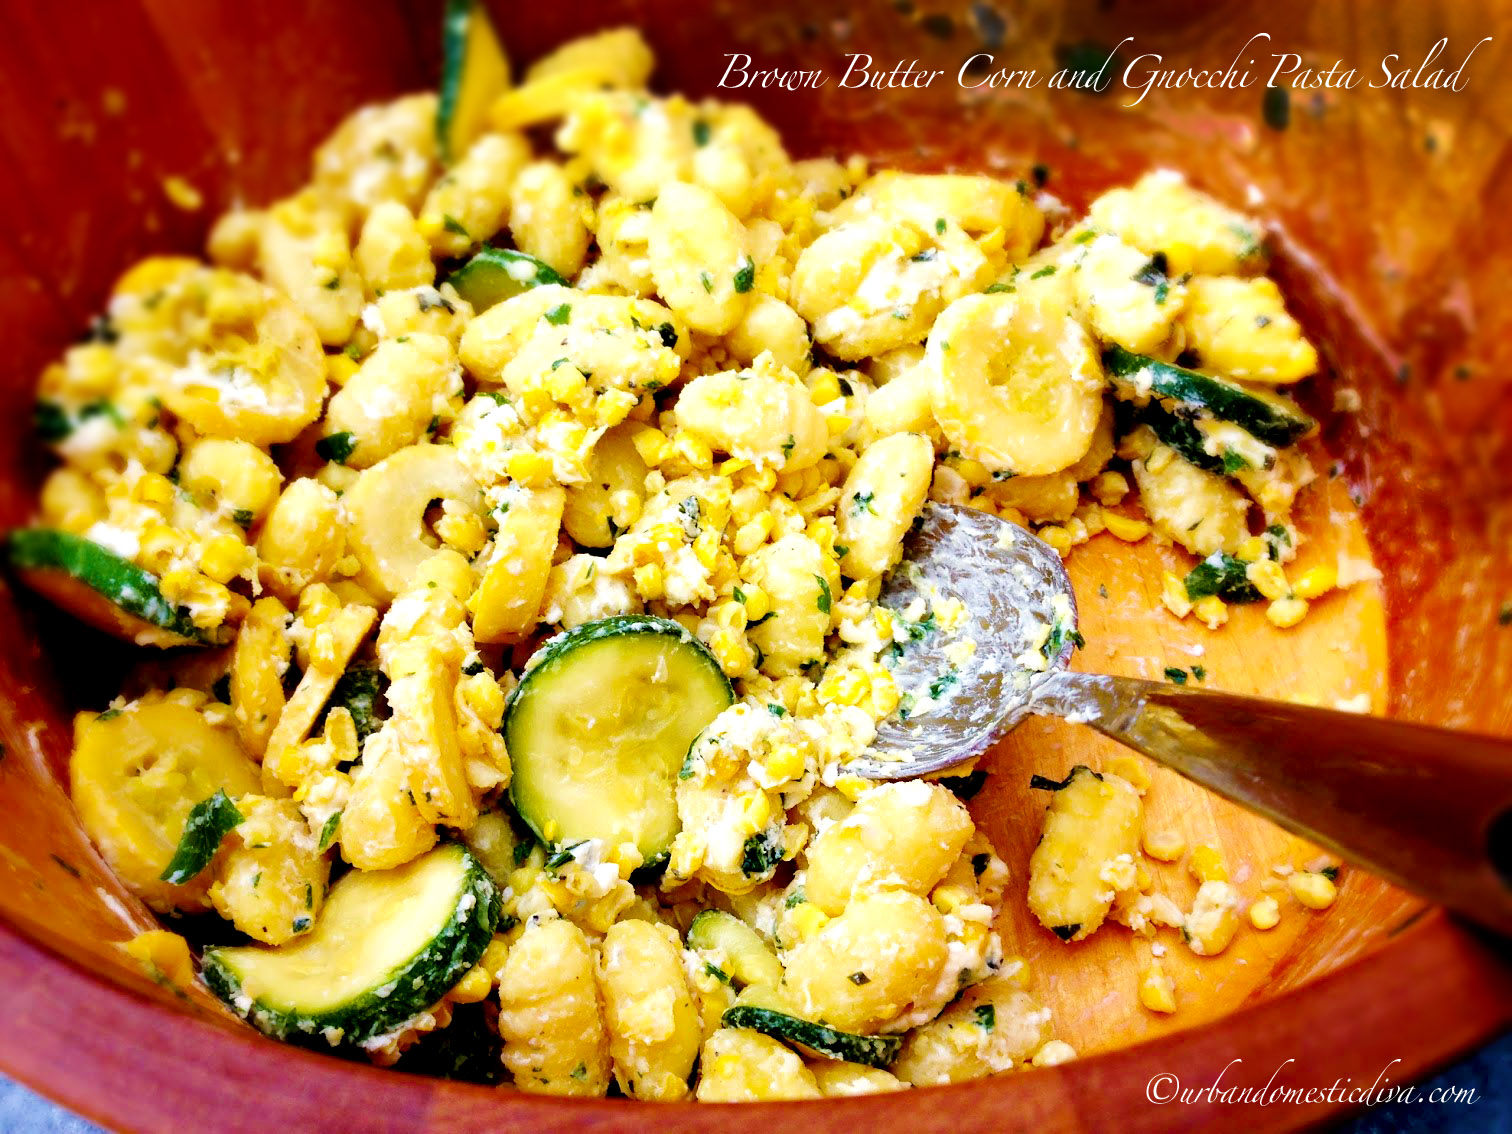 ... pasta salads. Brown butter? GNOCCHI!? HONEY GOAT CHEESE? Sweet corn